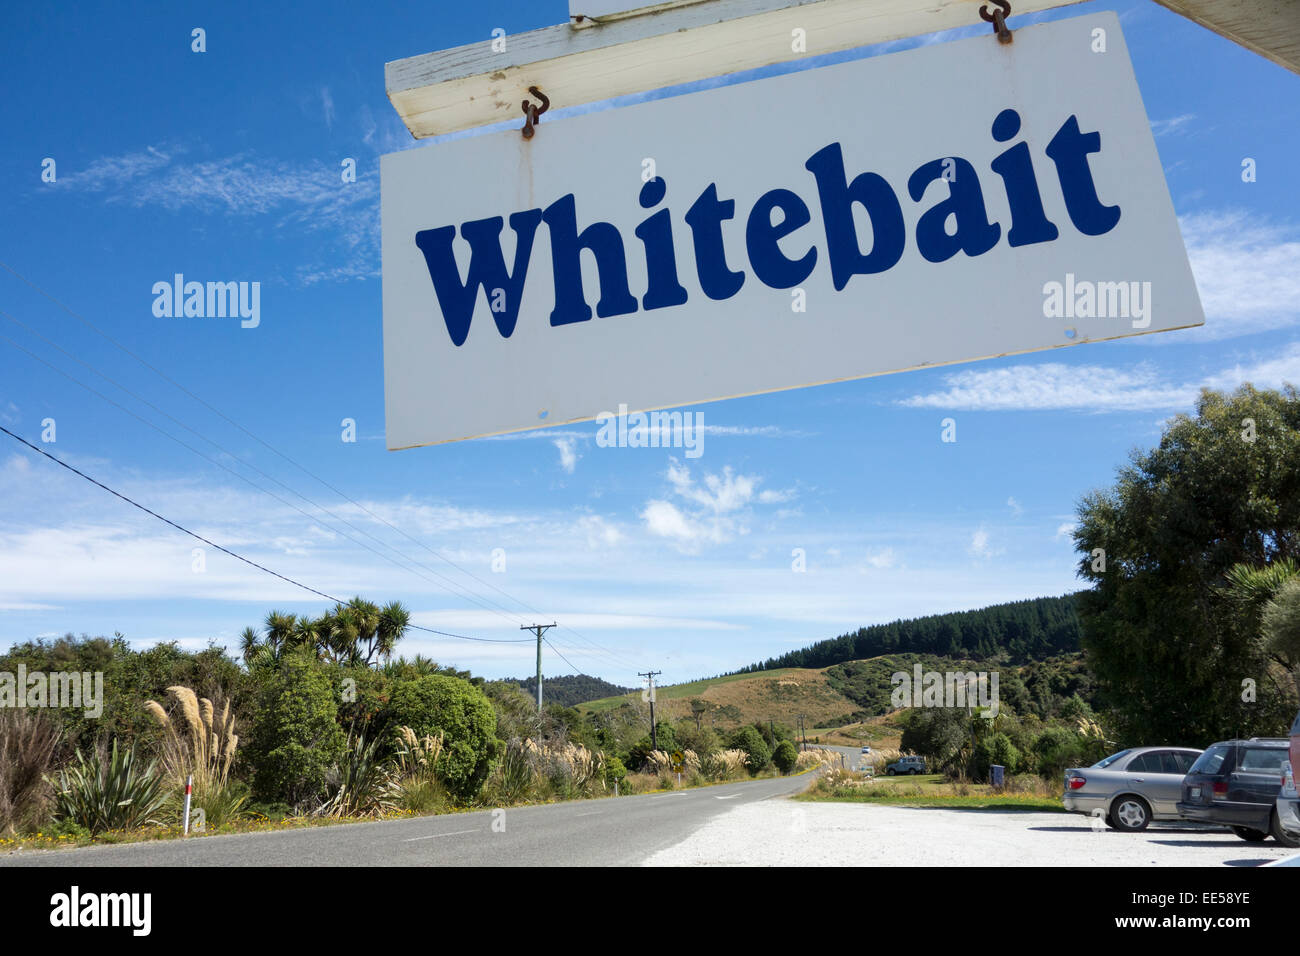 Whitebait sign at the side of the road in front of Niagara Falls Cafe restaurant in Niagara, The Catlins, New Zealand - Stock Image